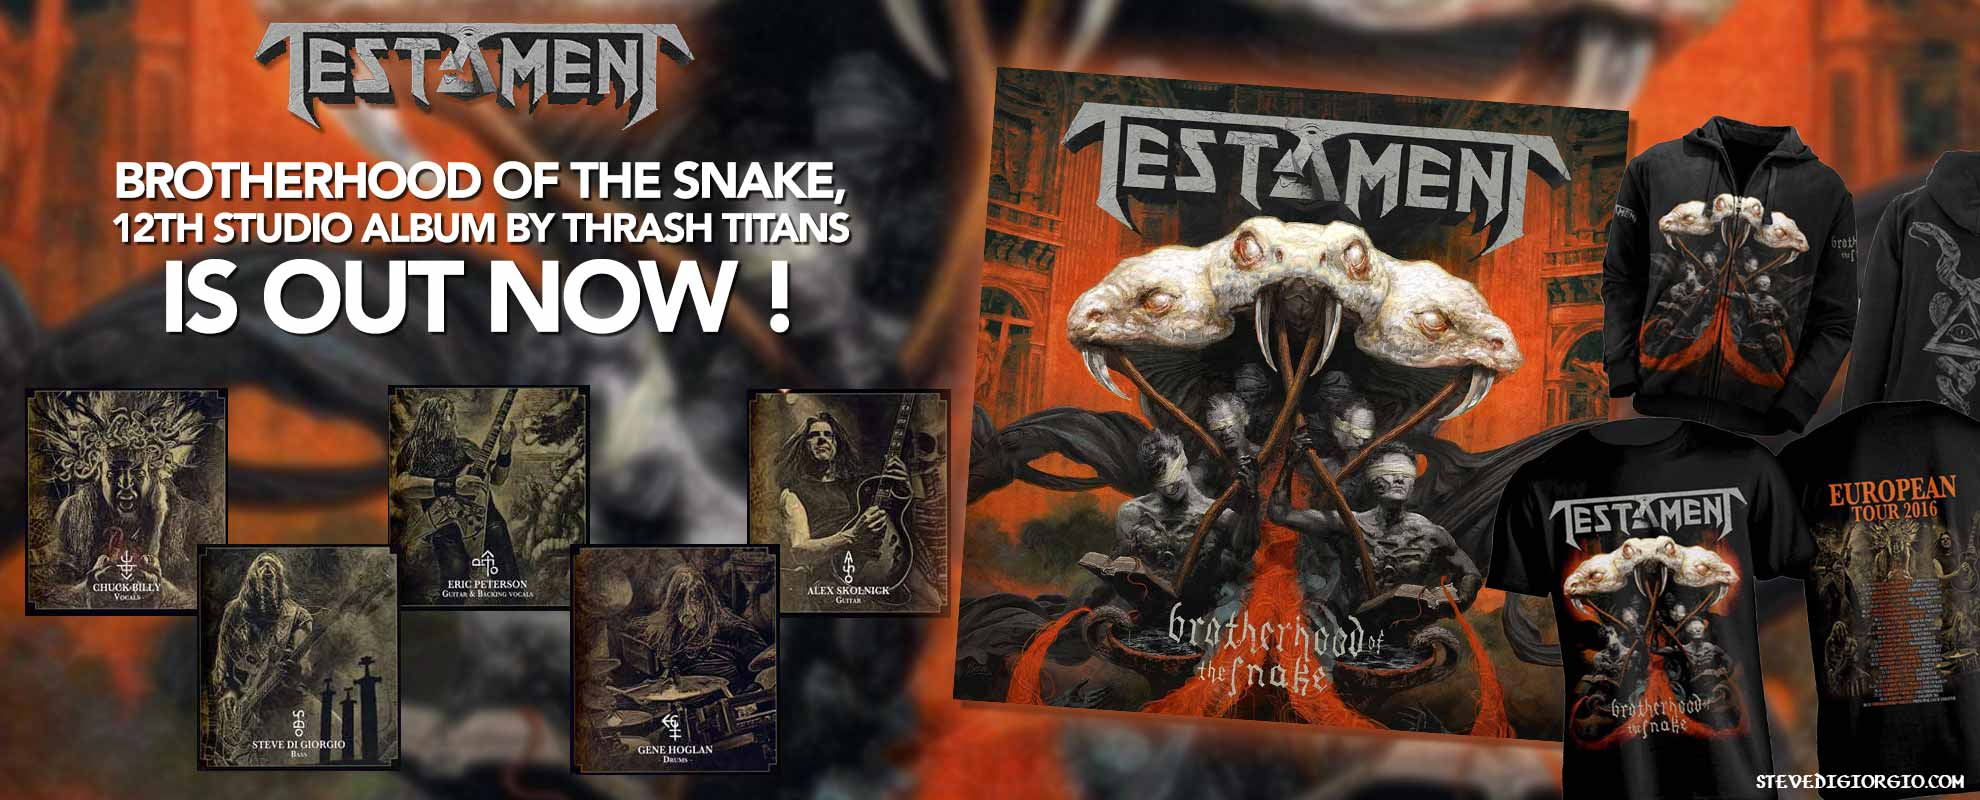 Testament's Brotherhood Of The Snake is Out NOW!